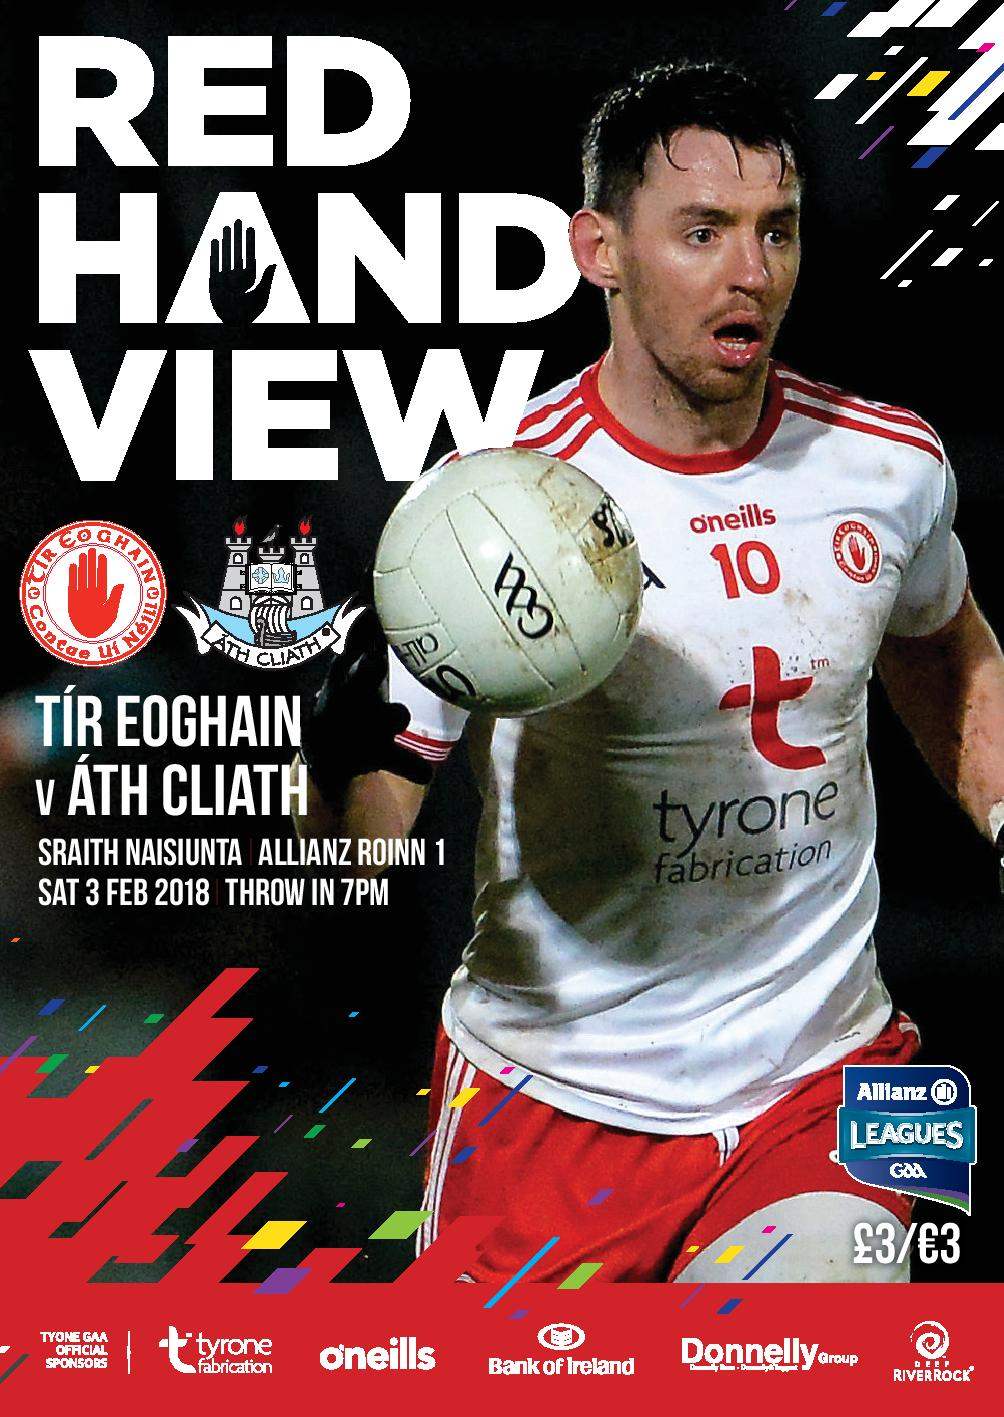 Red Hand View a must for all Supporters